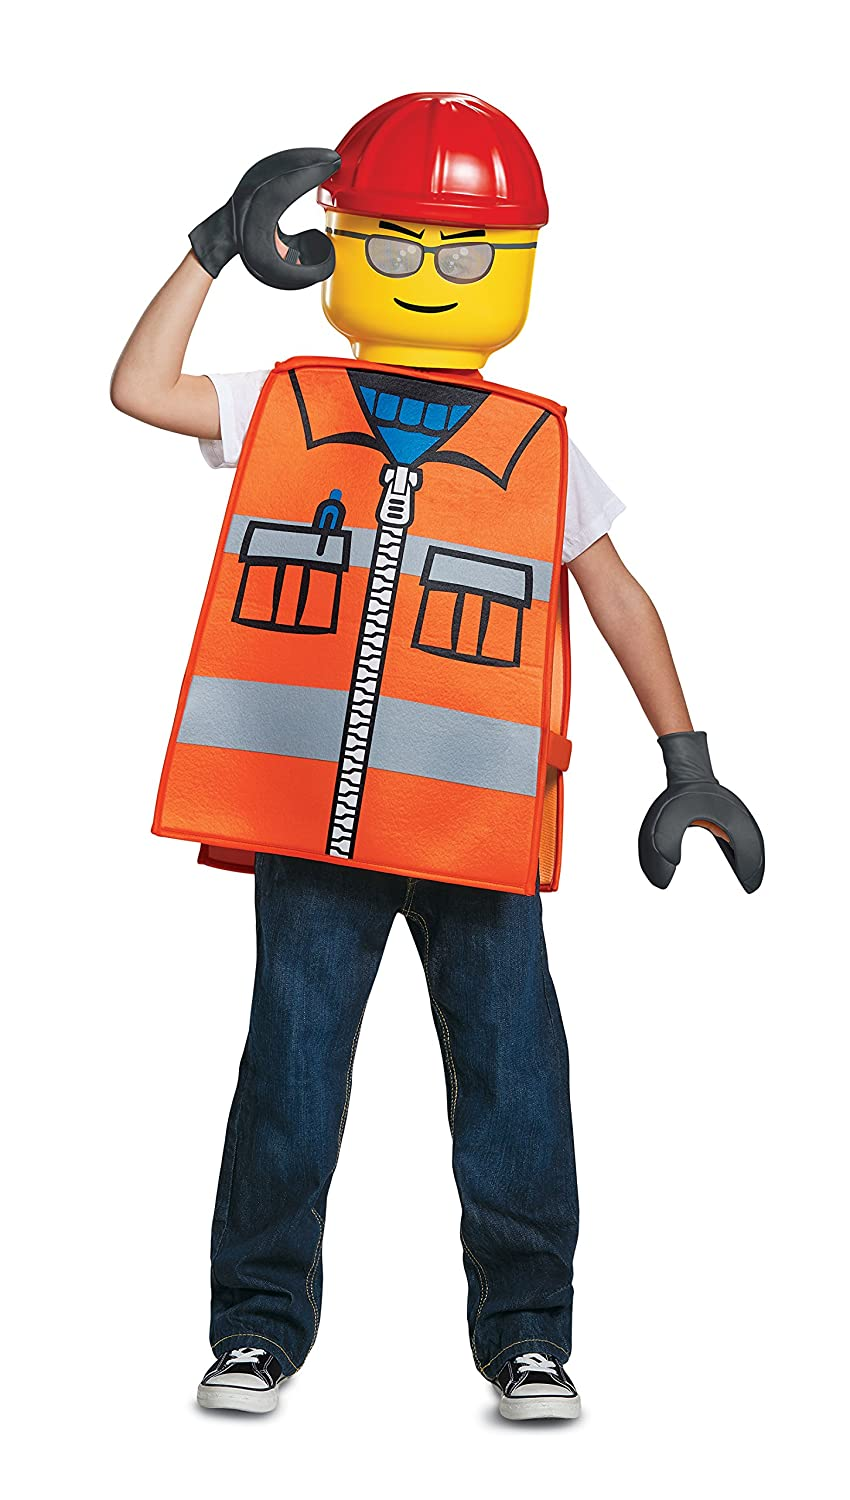 Disguise LEGO Construction Worker ベーシック 子供用コスチューム One Size Child  B079ZHLFP8